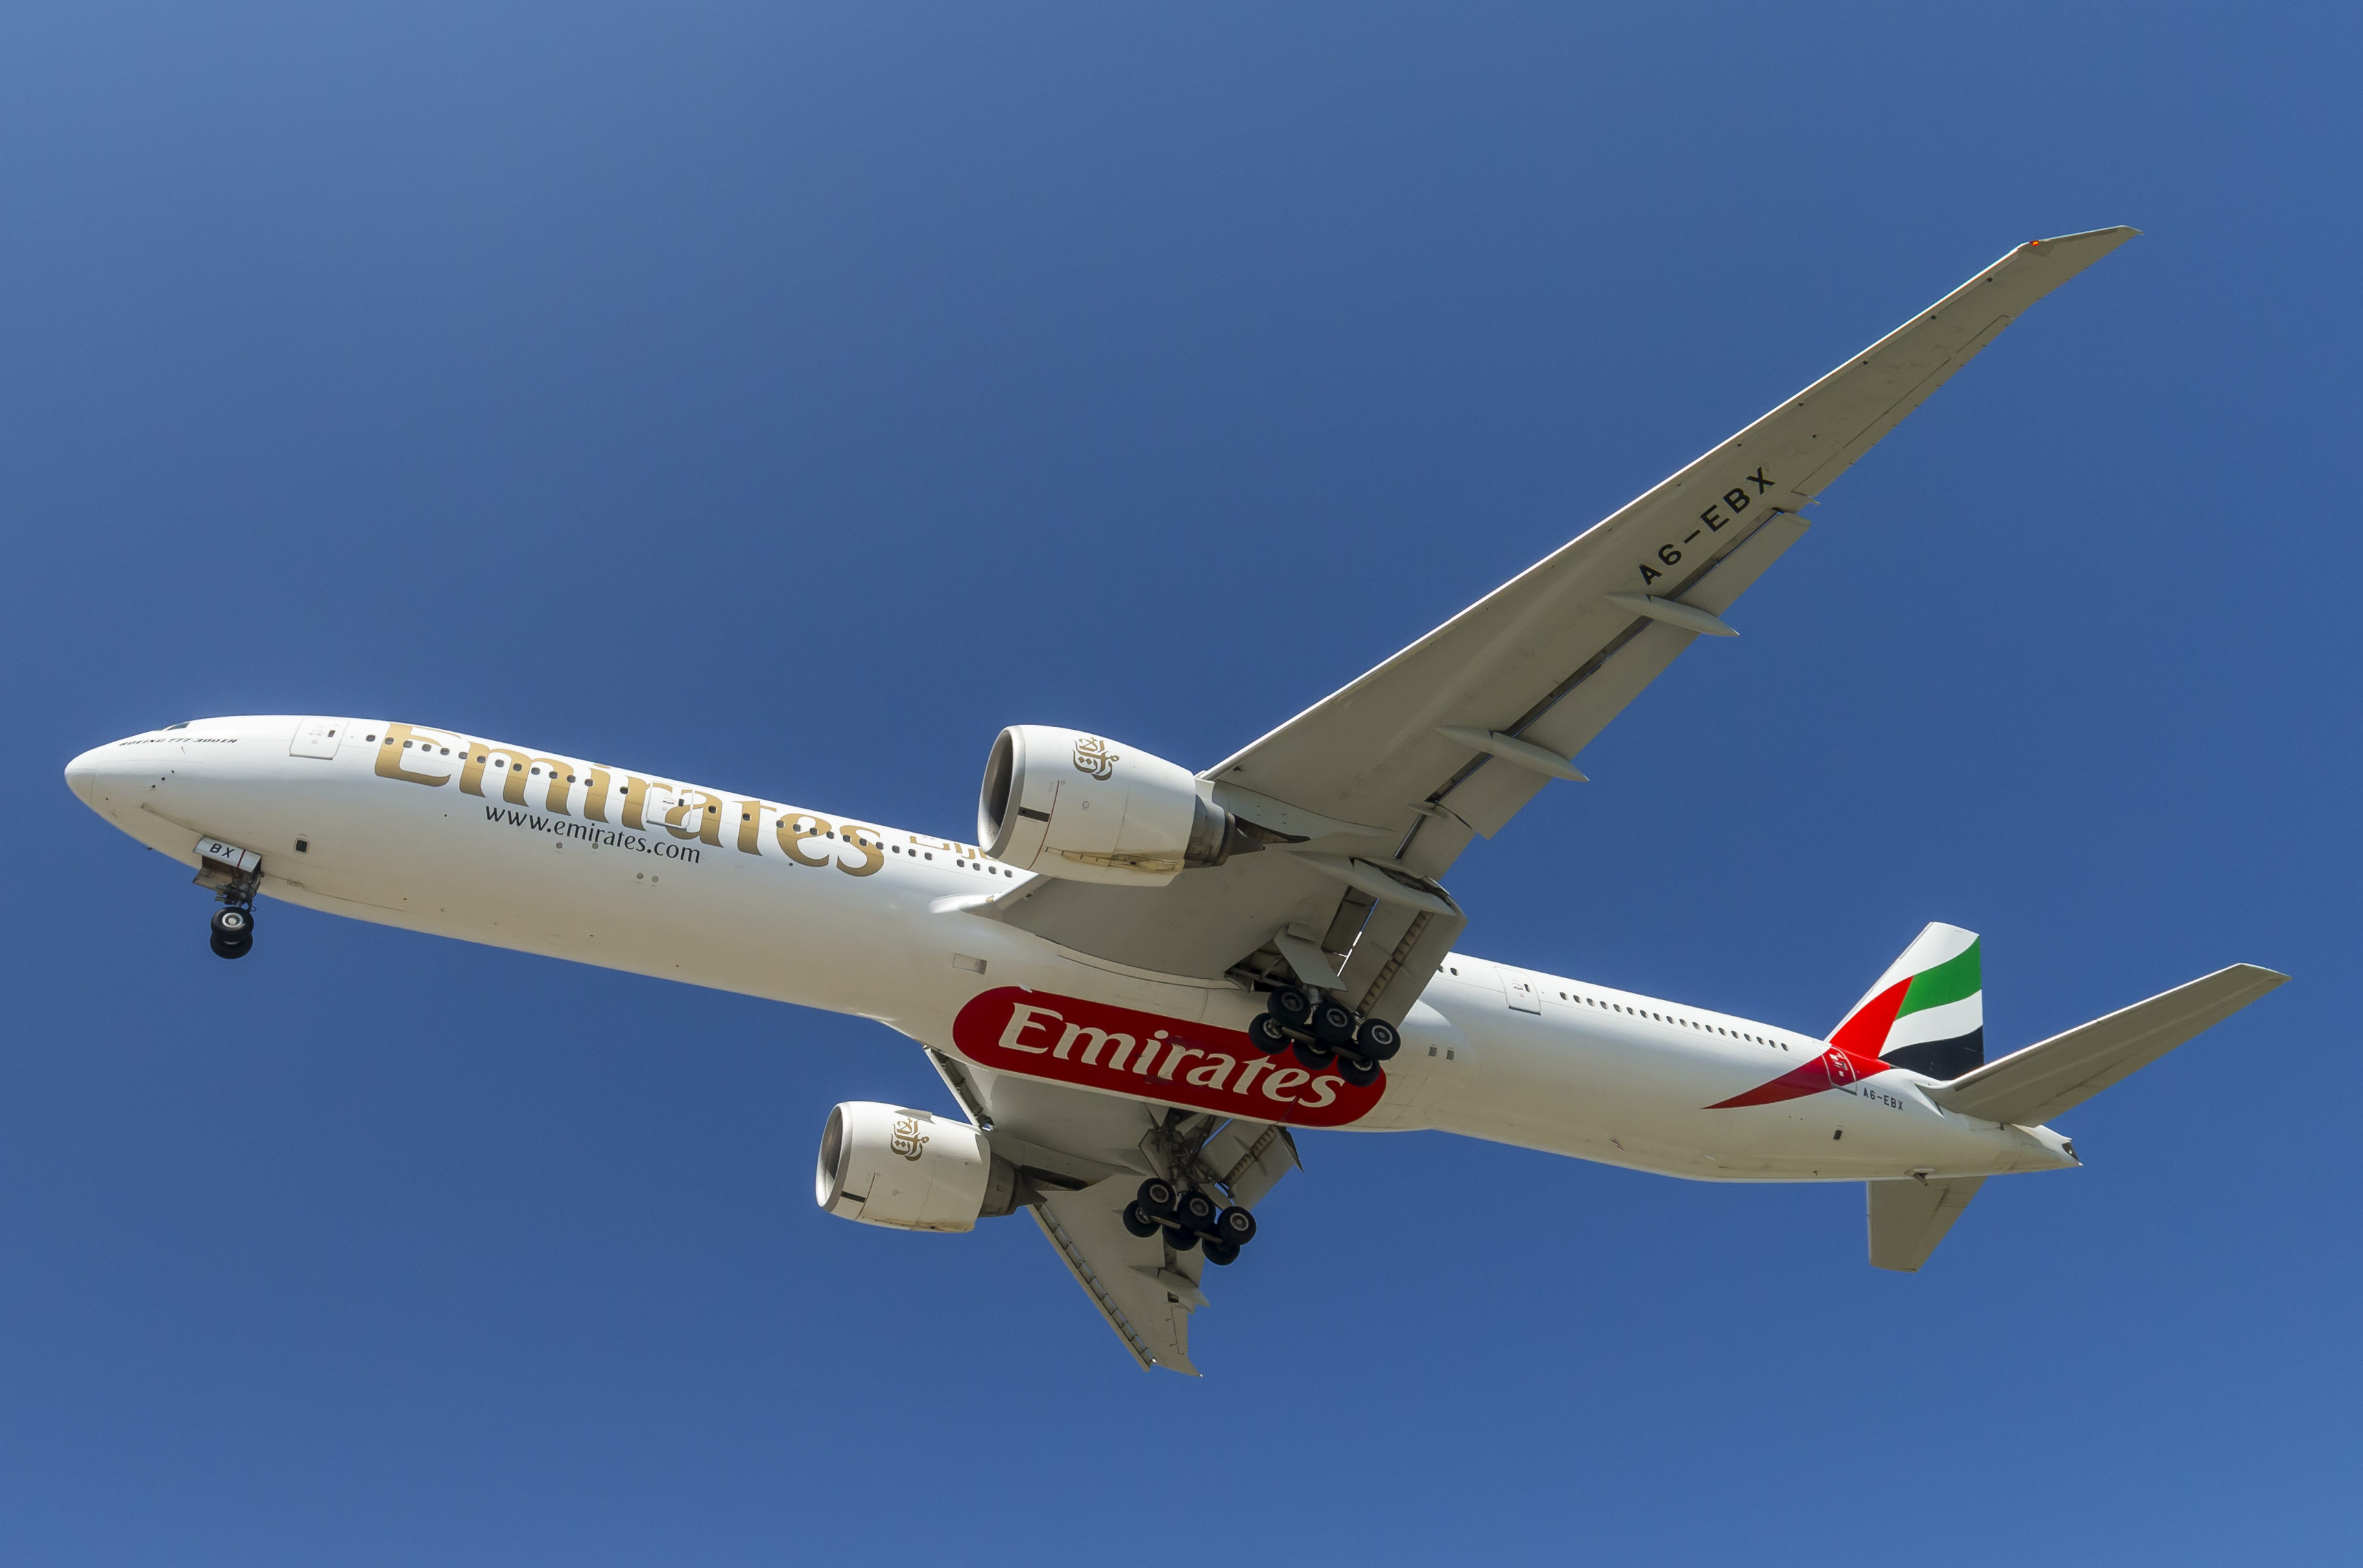 En Boeing 777-300 fra Emirates. Foto: © Thorbjørn Brunander Sund, Danish Aviation Photo